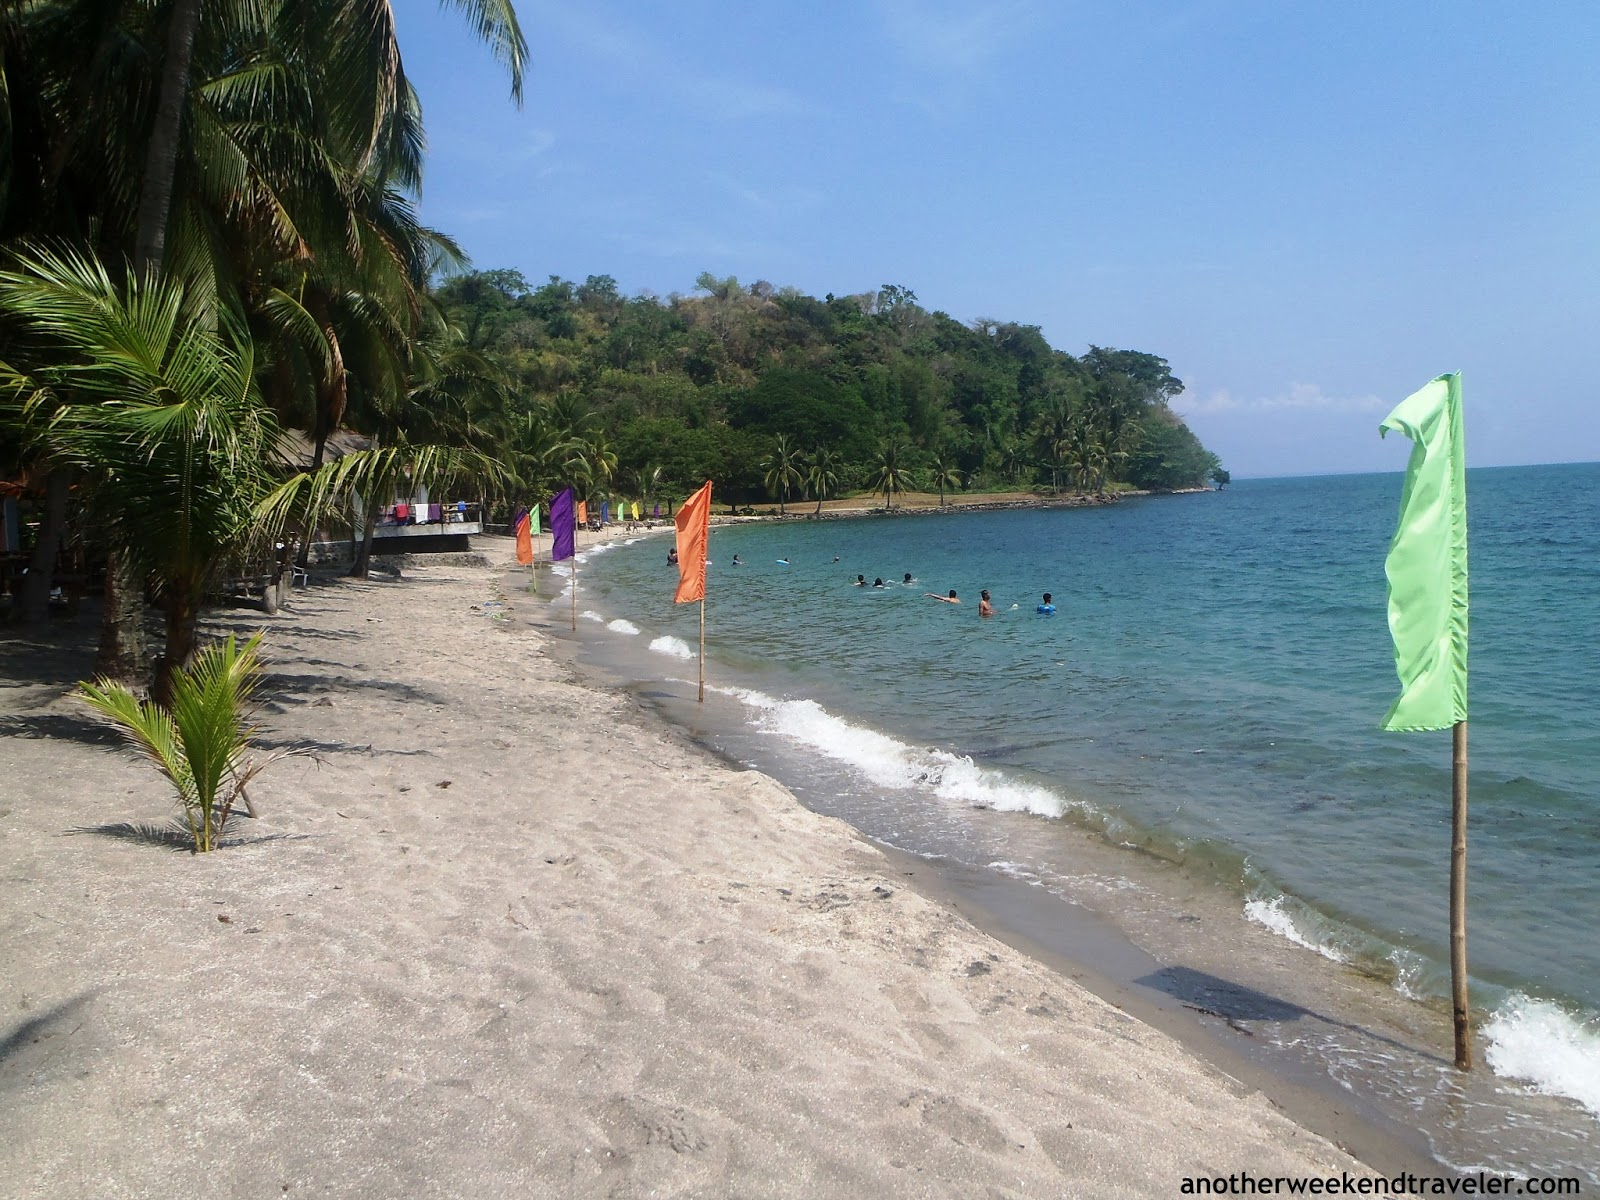 Private Beach A Small Cove With Few People Swimming On Weekend Cottages Are Available Near The